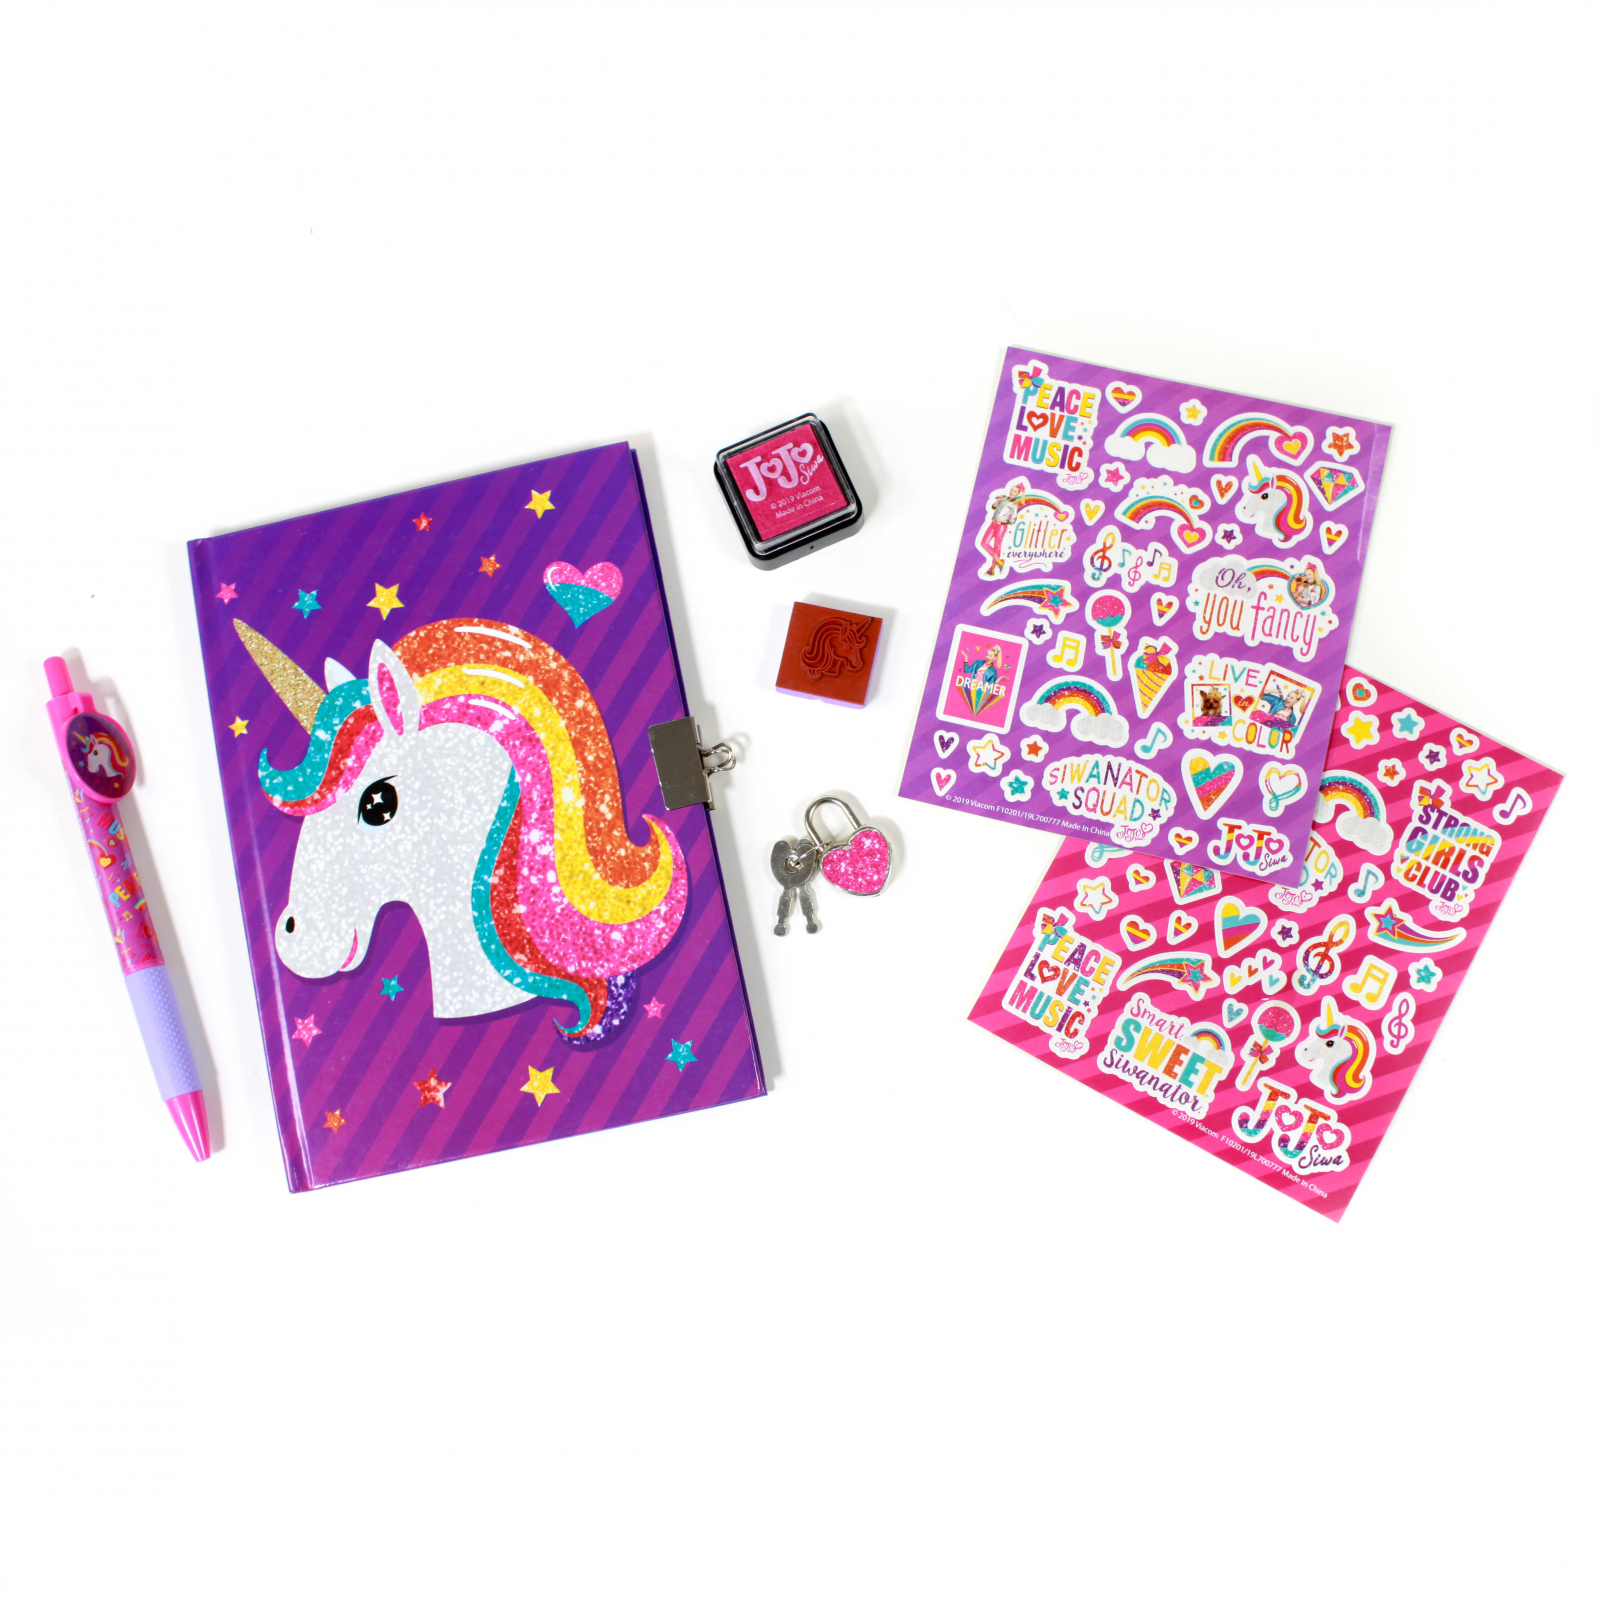 JoJo Siwa Secret Locking Diary Set With Stamps And Stickers